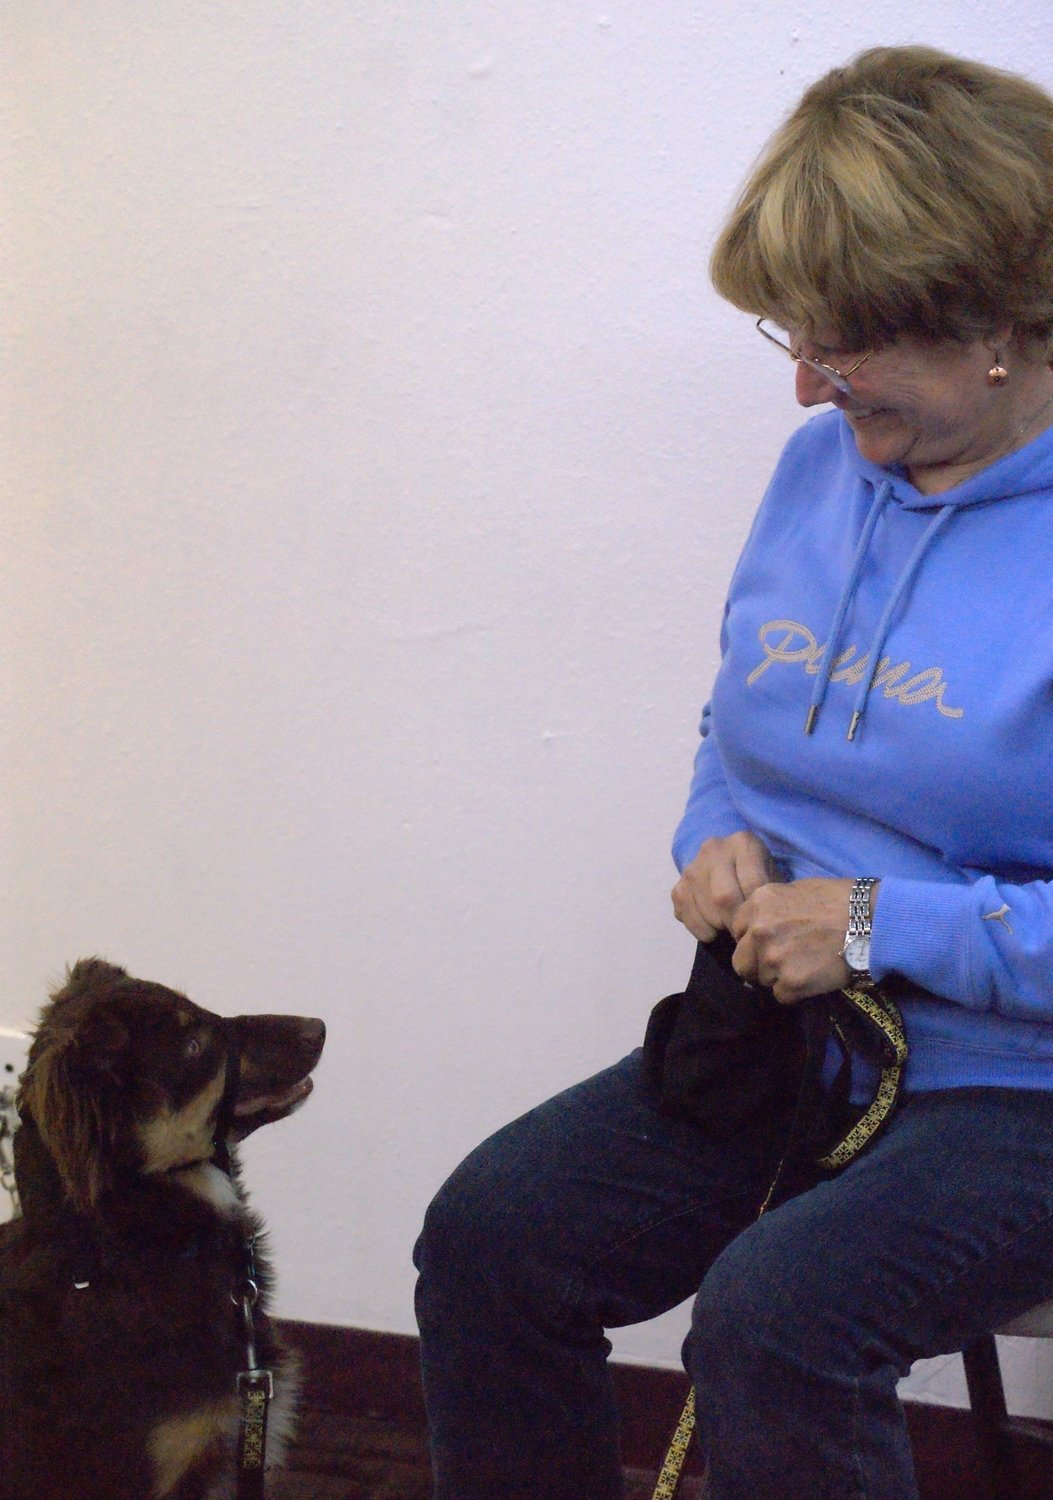 Well Trained Puppies & Dogs, Level I: Mon, 11/16/20 at 6:15 PM  (seminar & 3 1-Hr Classes) Angie, Instructors